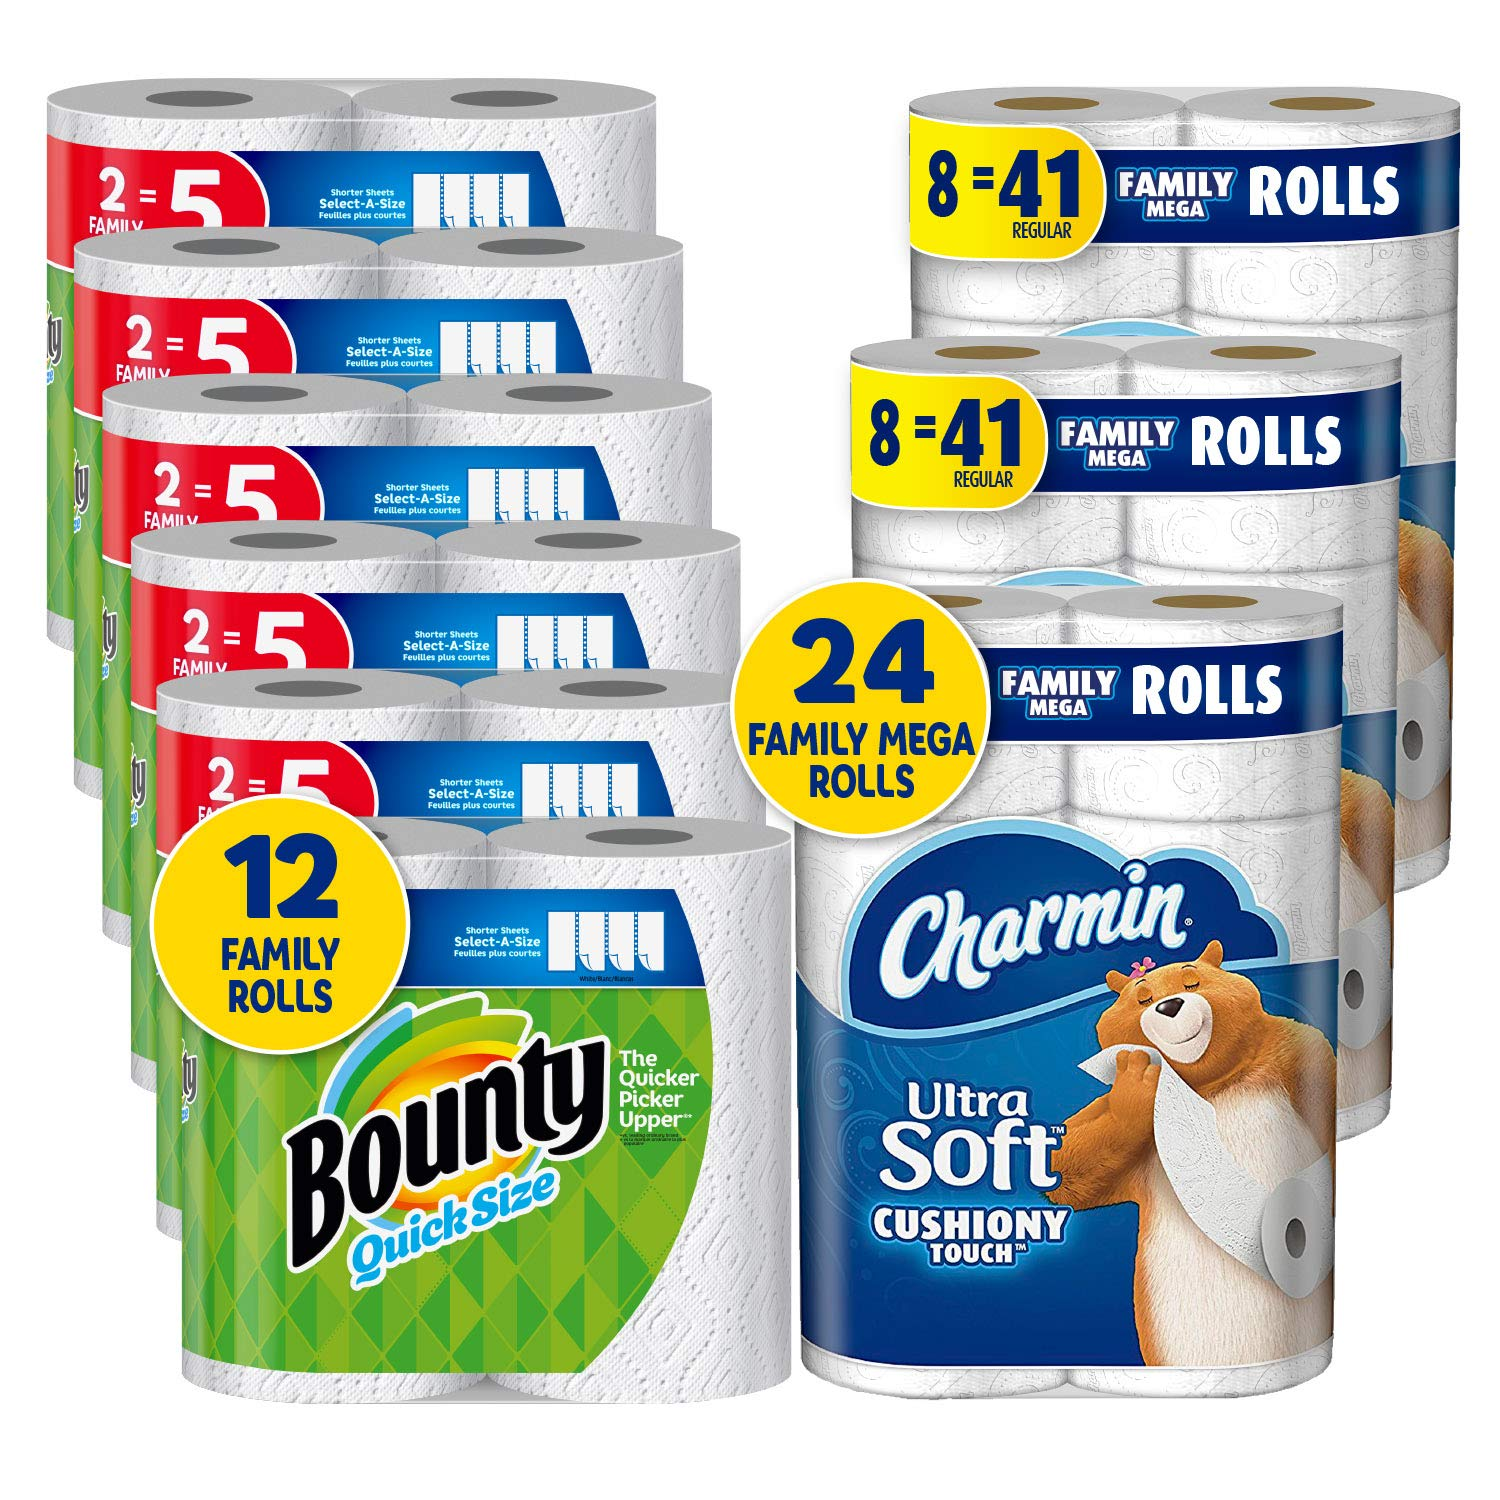 Charmin Ultra Soft Cushiony Touch Toilet Paper, 24 Family Mega Rolls and Bounty Quick-Size Paper Towels,12 Family Rolls, Bundle by Charmin